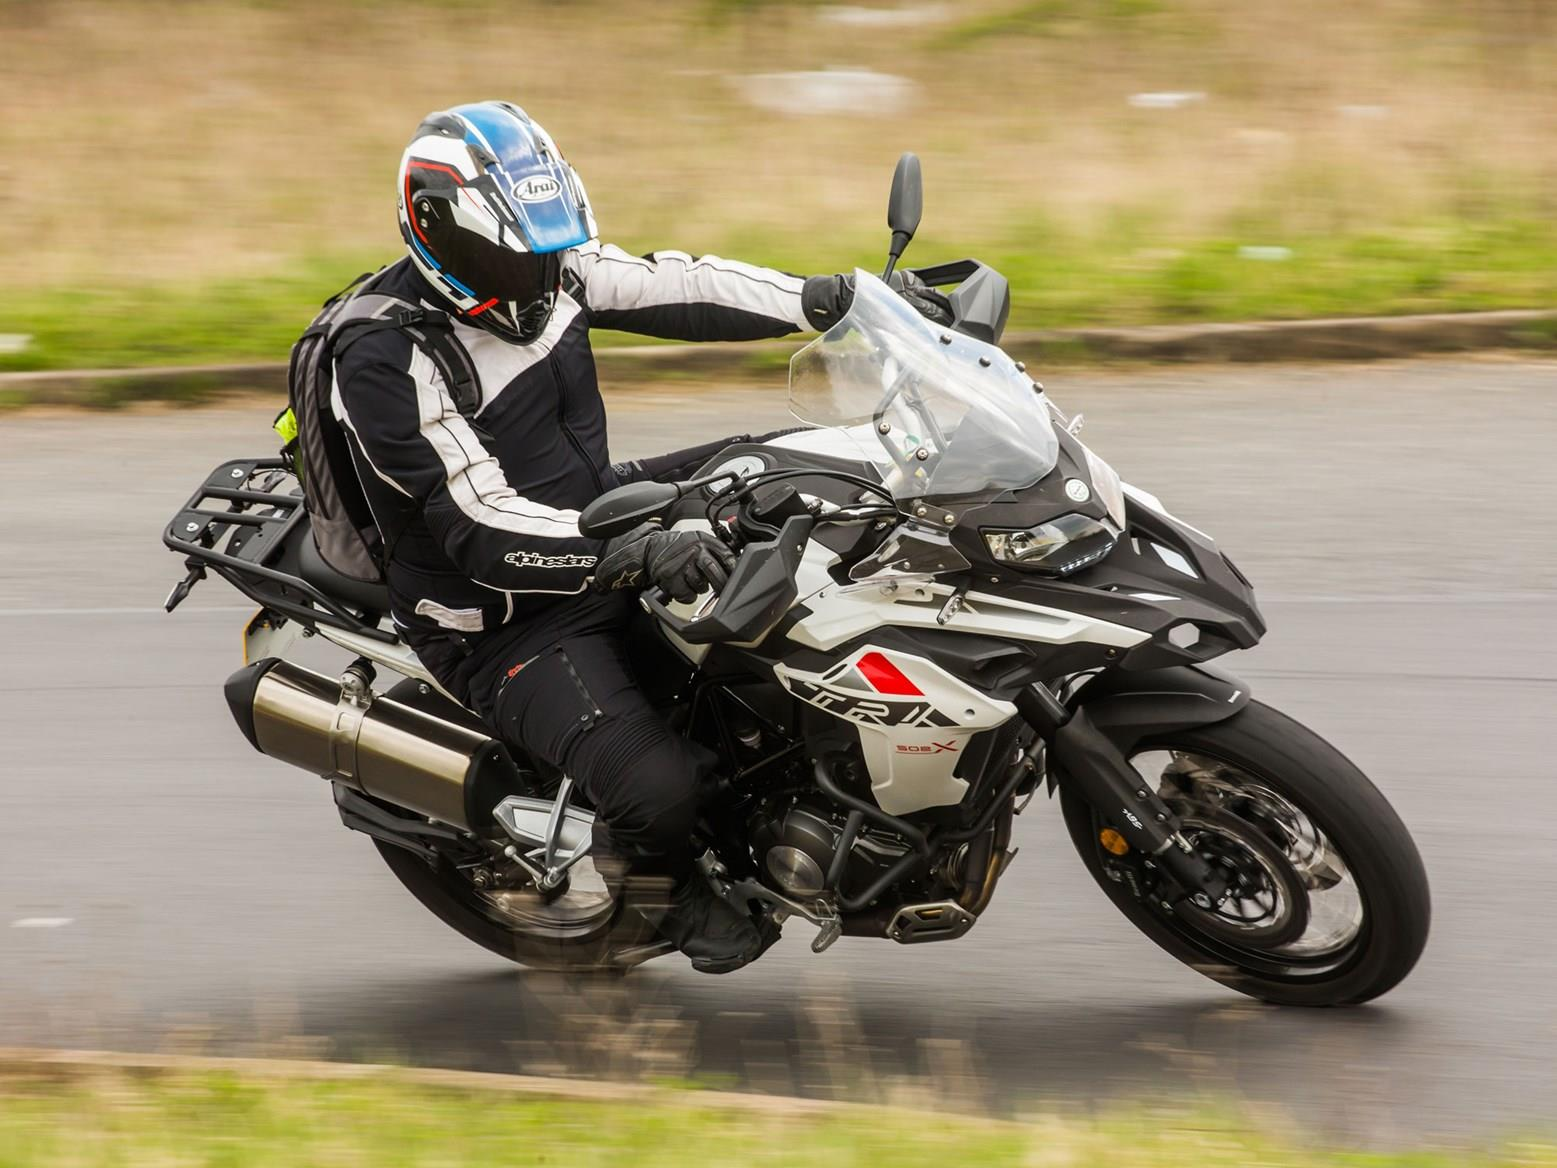 Riding the Benelli TRK 502